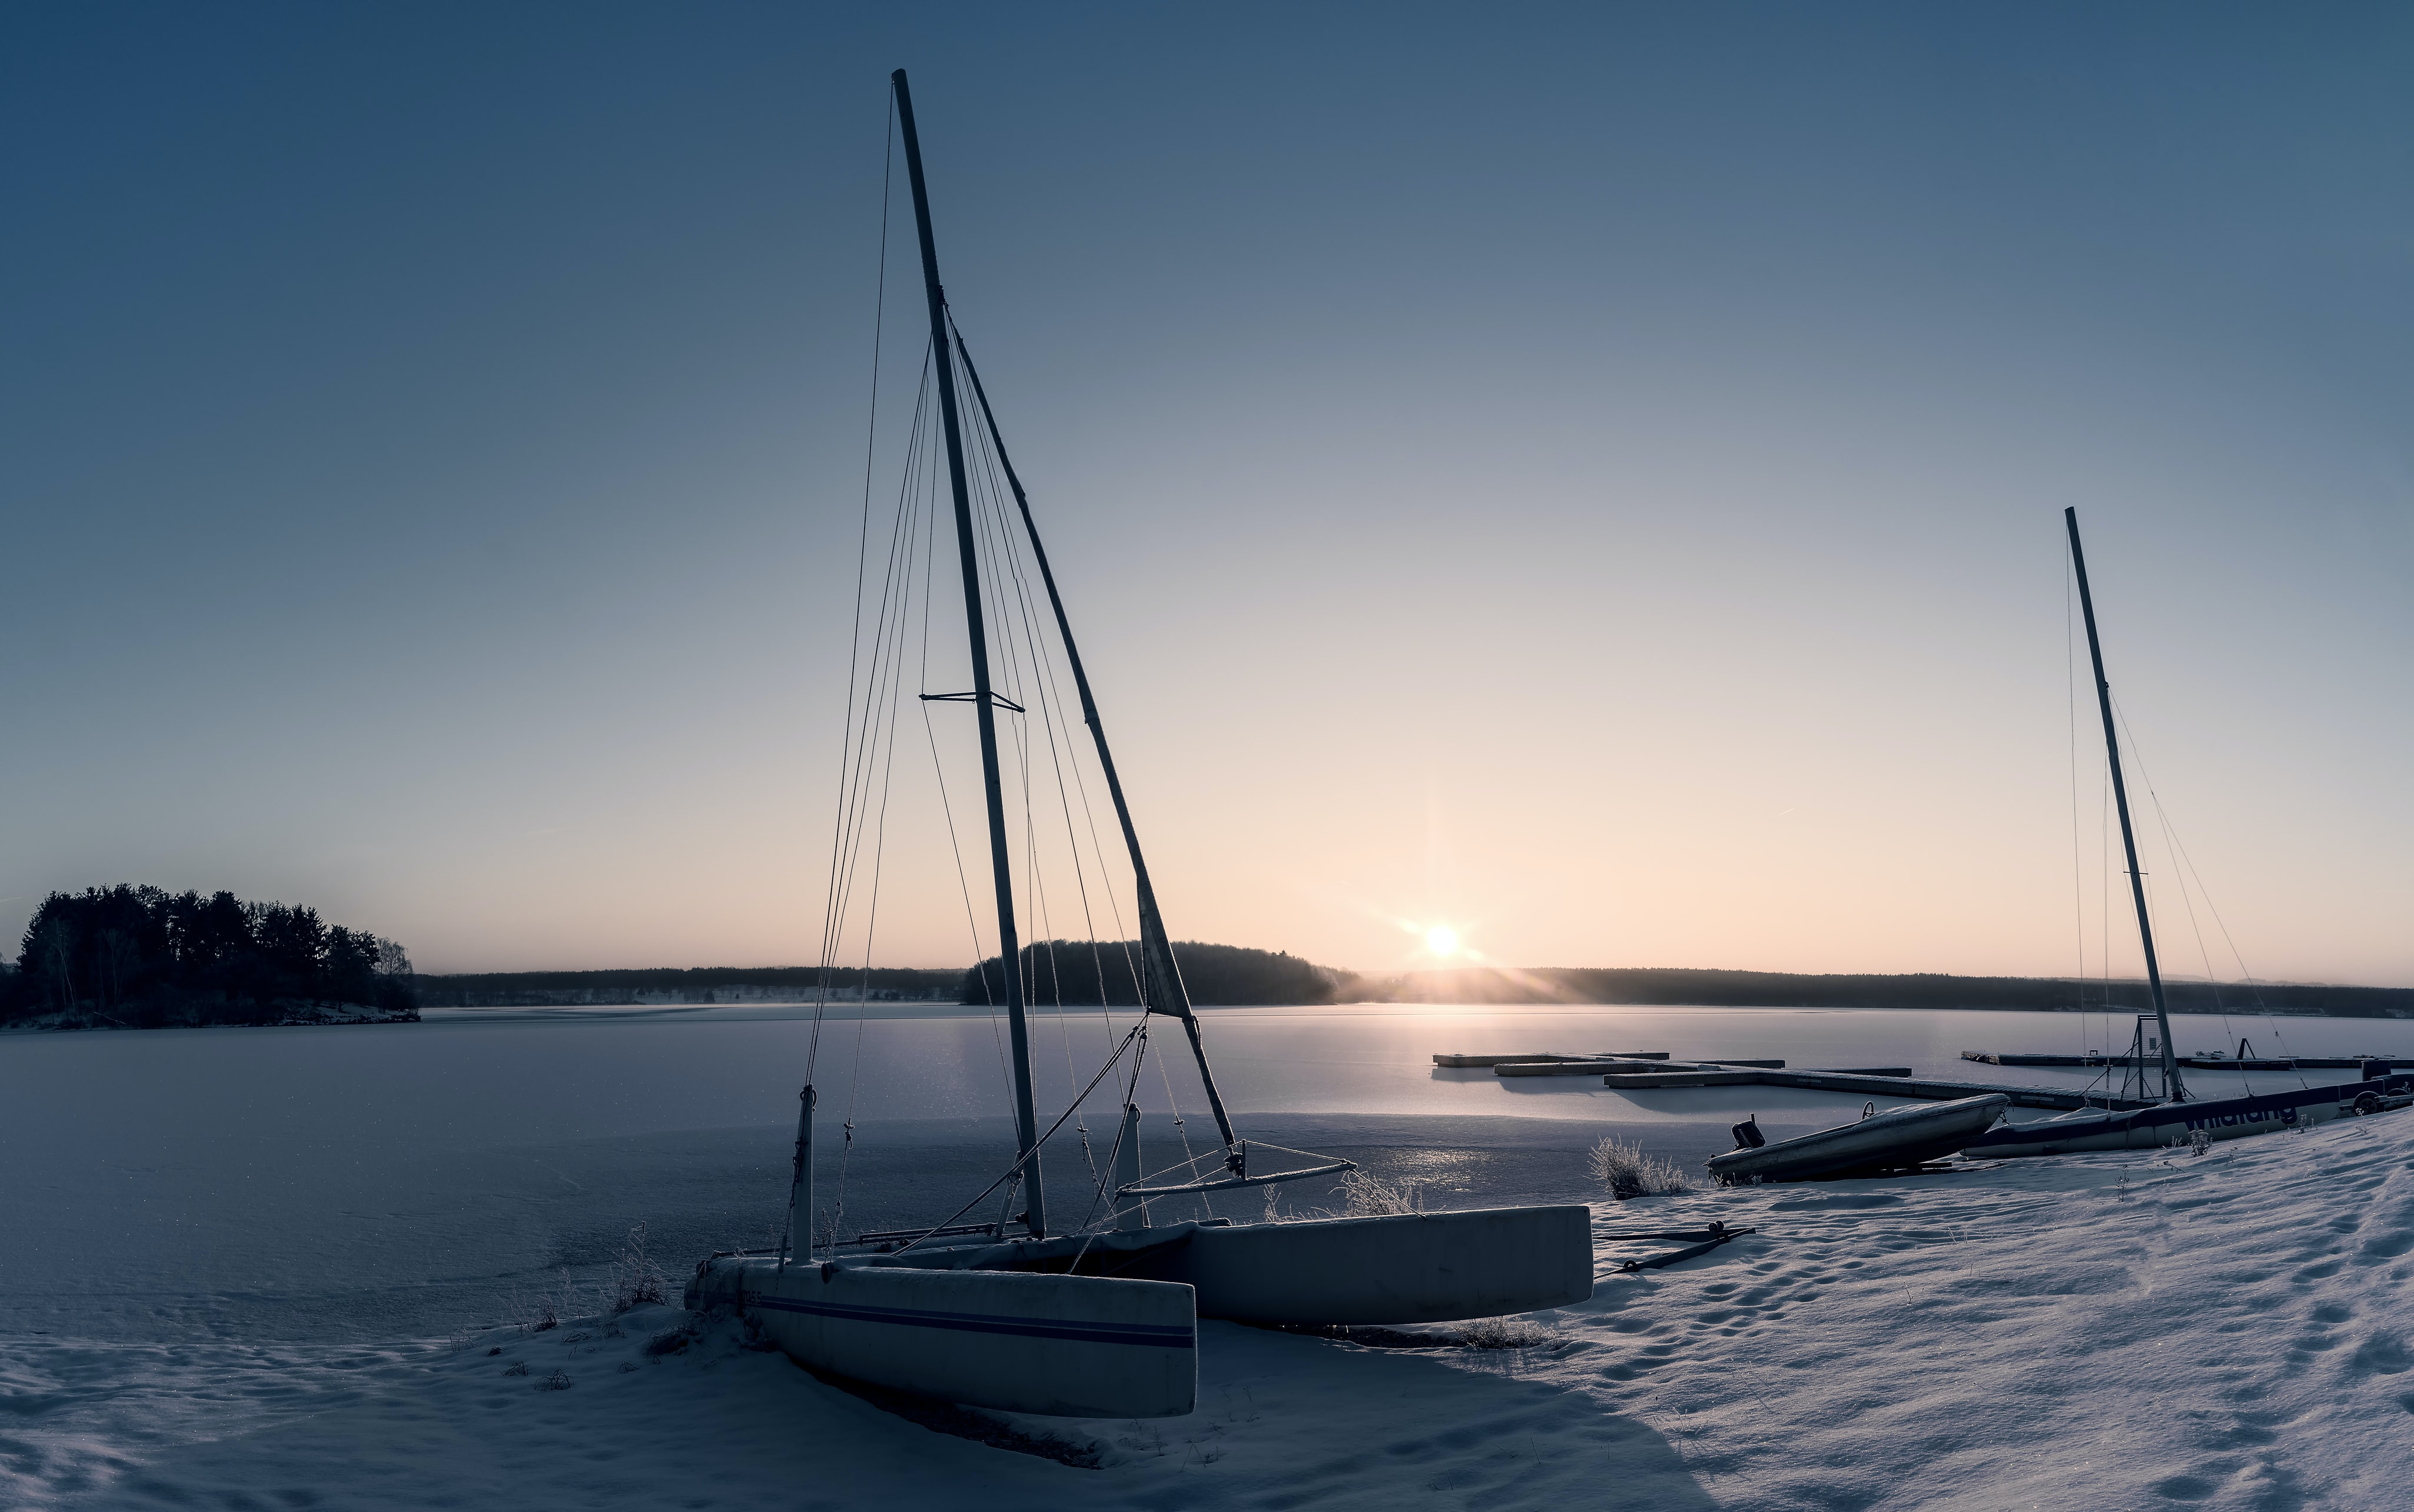 white boat on the seashore during golden hour